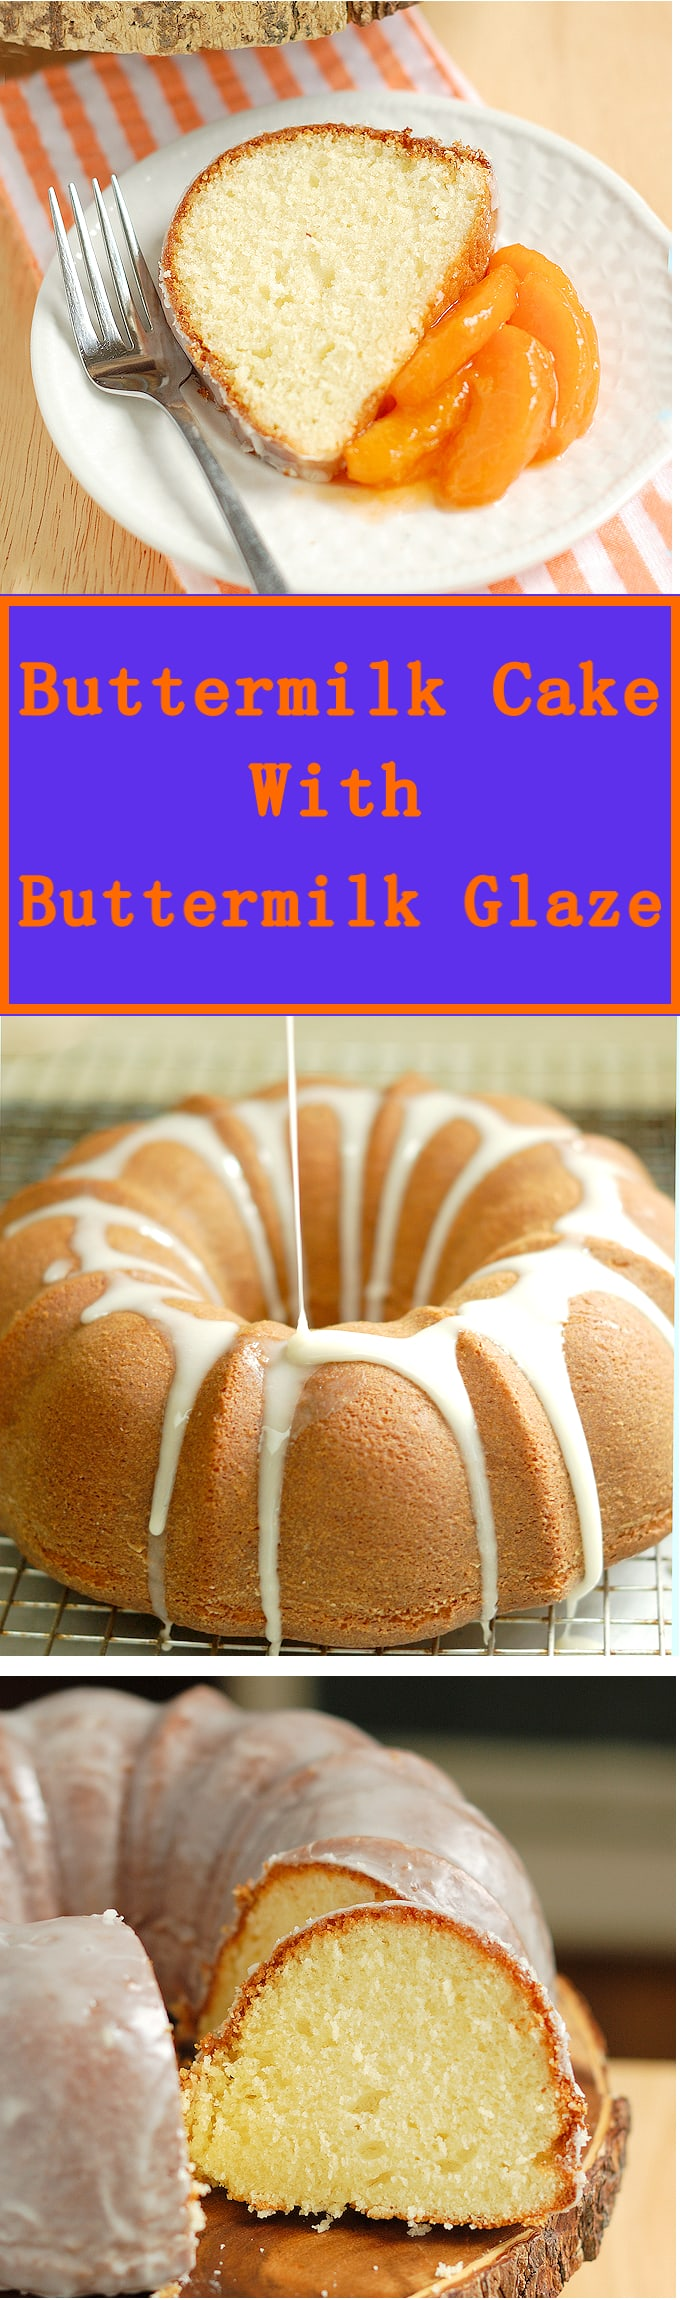 Melt-in-your-mouth buttrmilk cake with a thin coating of sweet buttermilk glaze. So easy to make. This is the perfect snack cake.